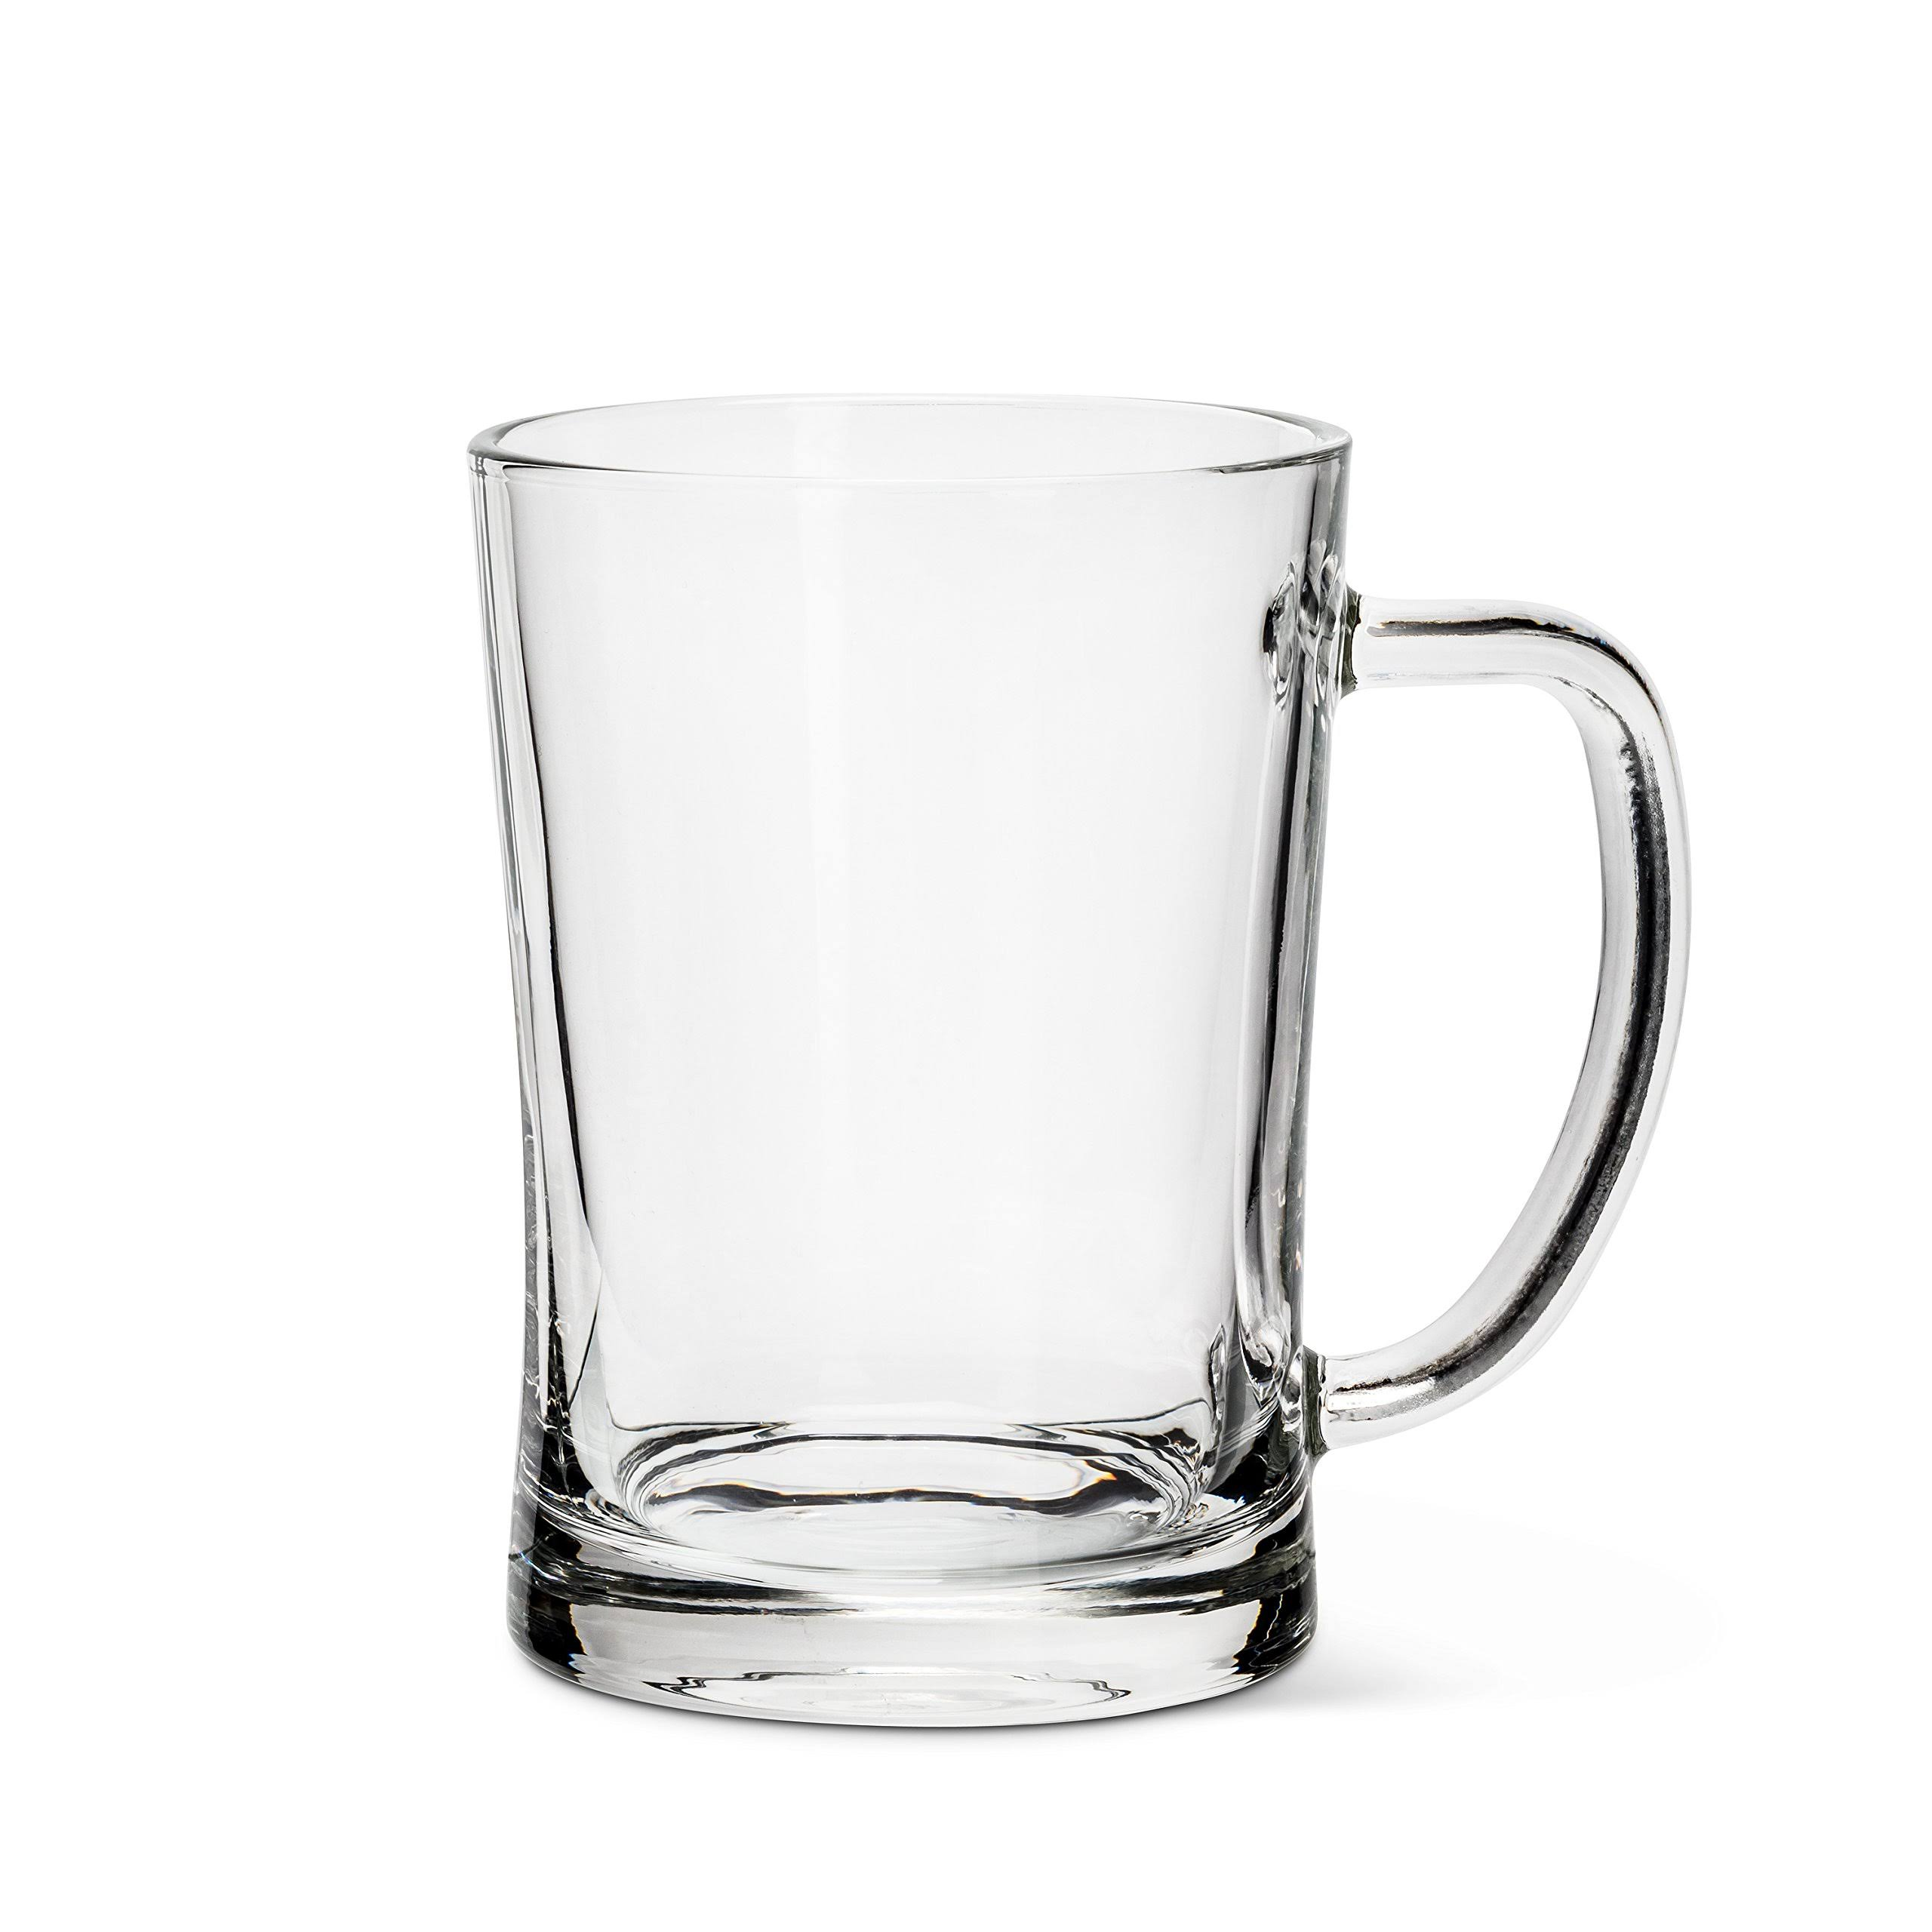 Abbott Mug Wide Glass Beer Mug One-Size